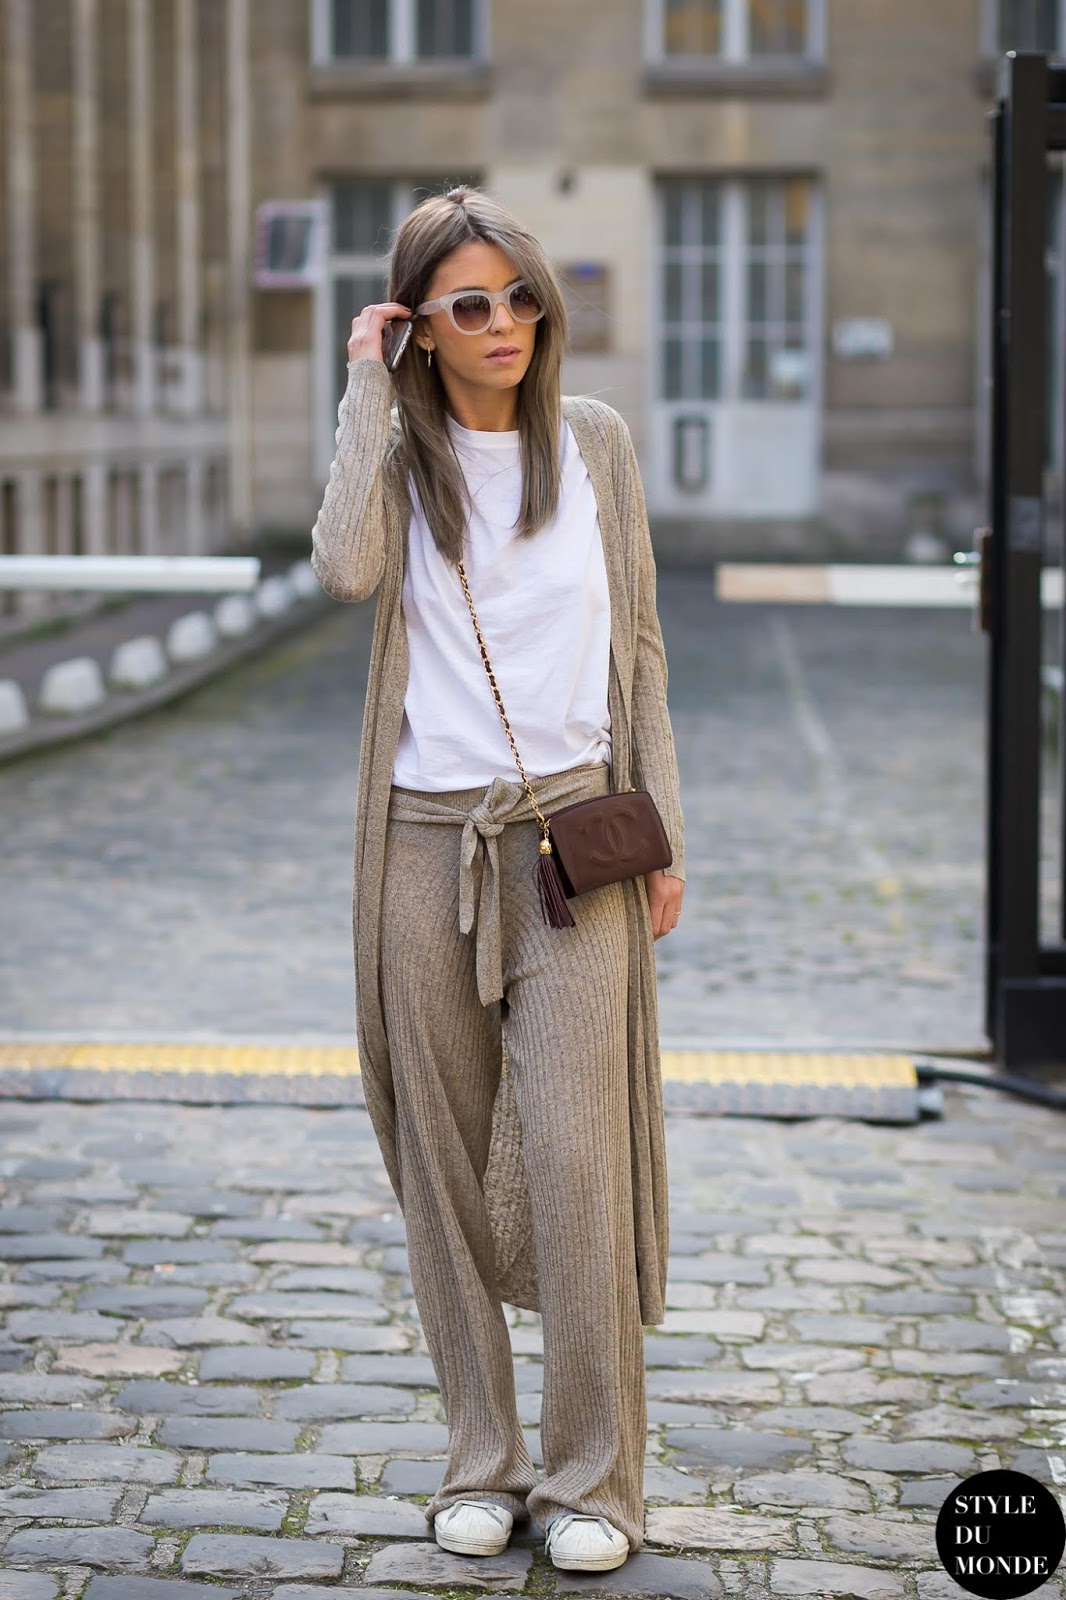 We're Obsessed With This Luxe Loungewear Look